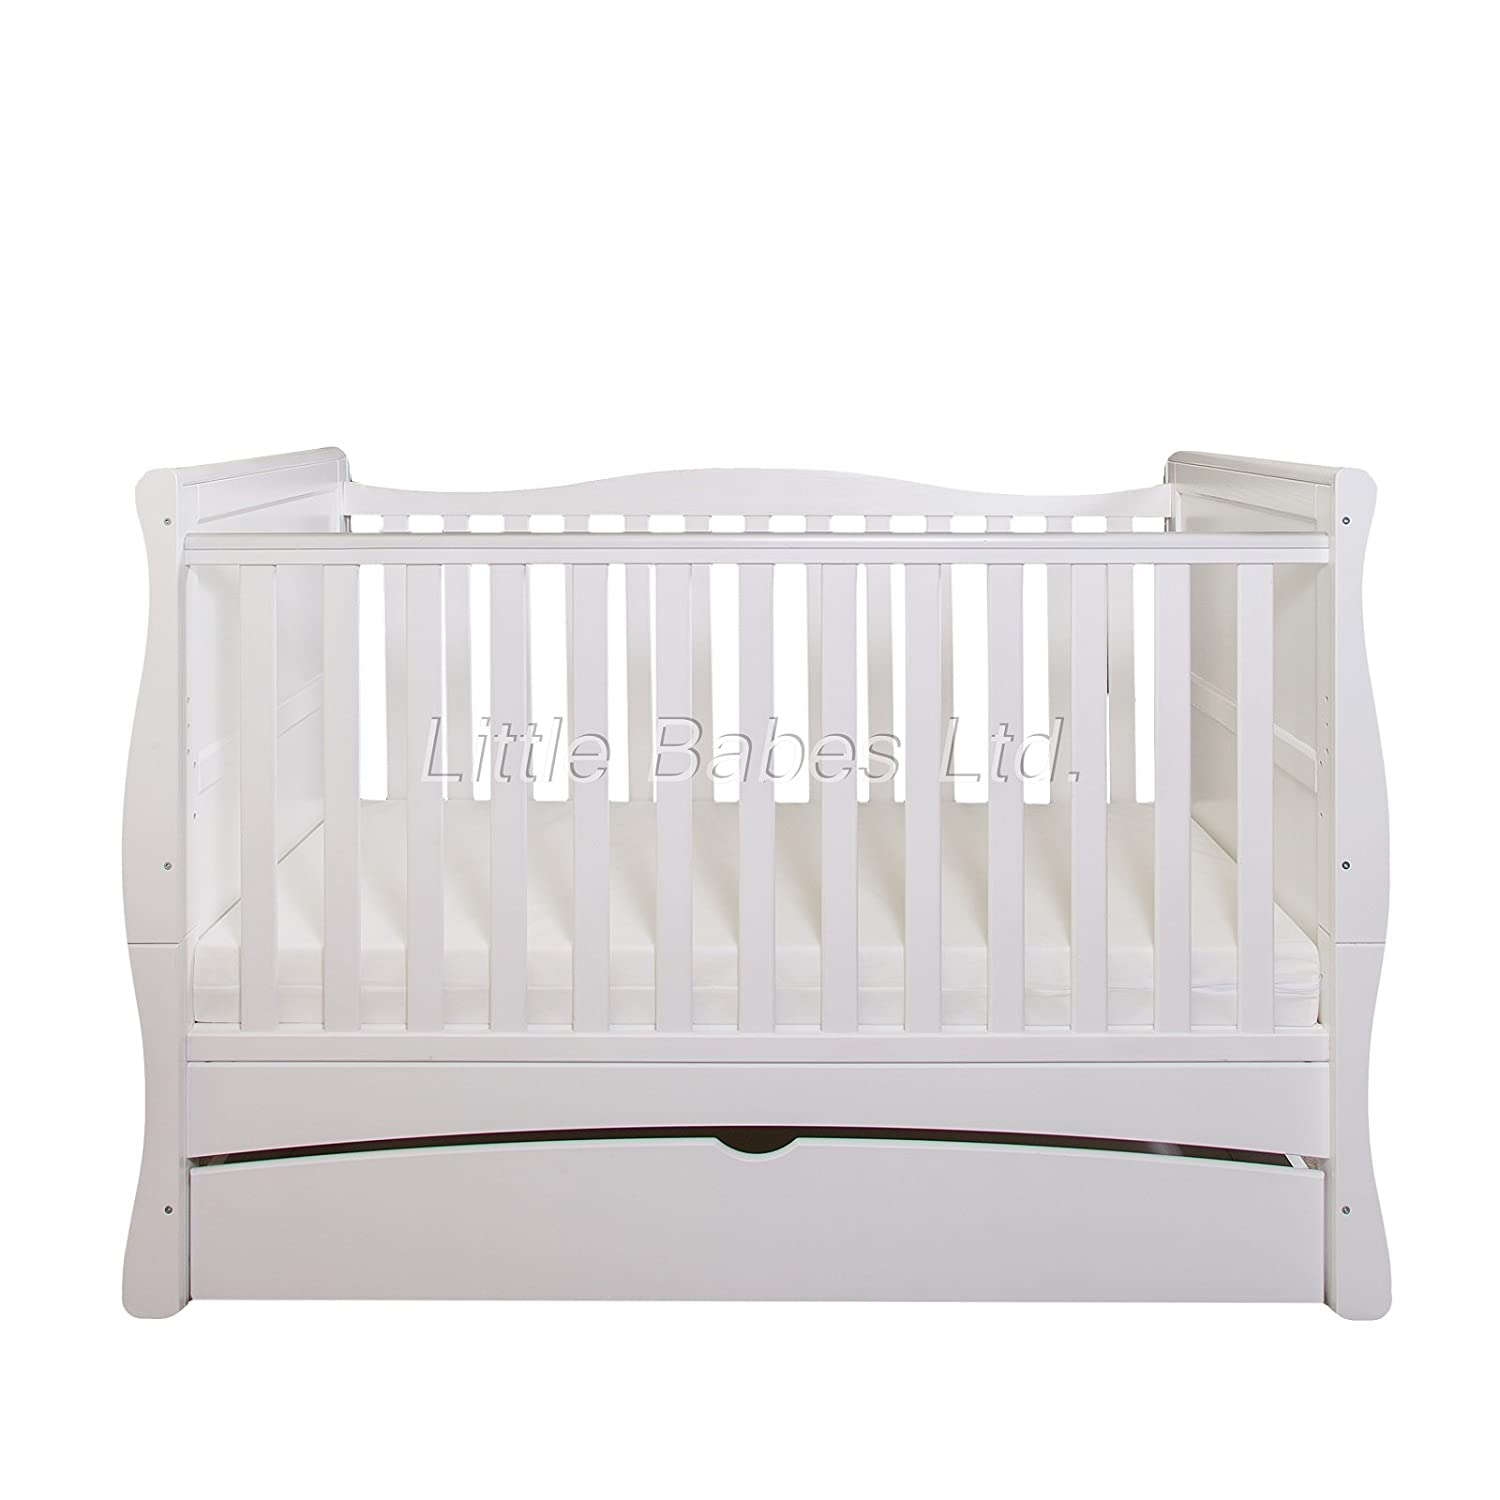 New baby white sleigh mason cot bed with drawer high density foam mattress cmhr28 140x70x10cm converts to junior bed toodler bed amazon co uk baby